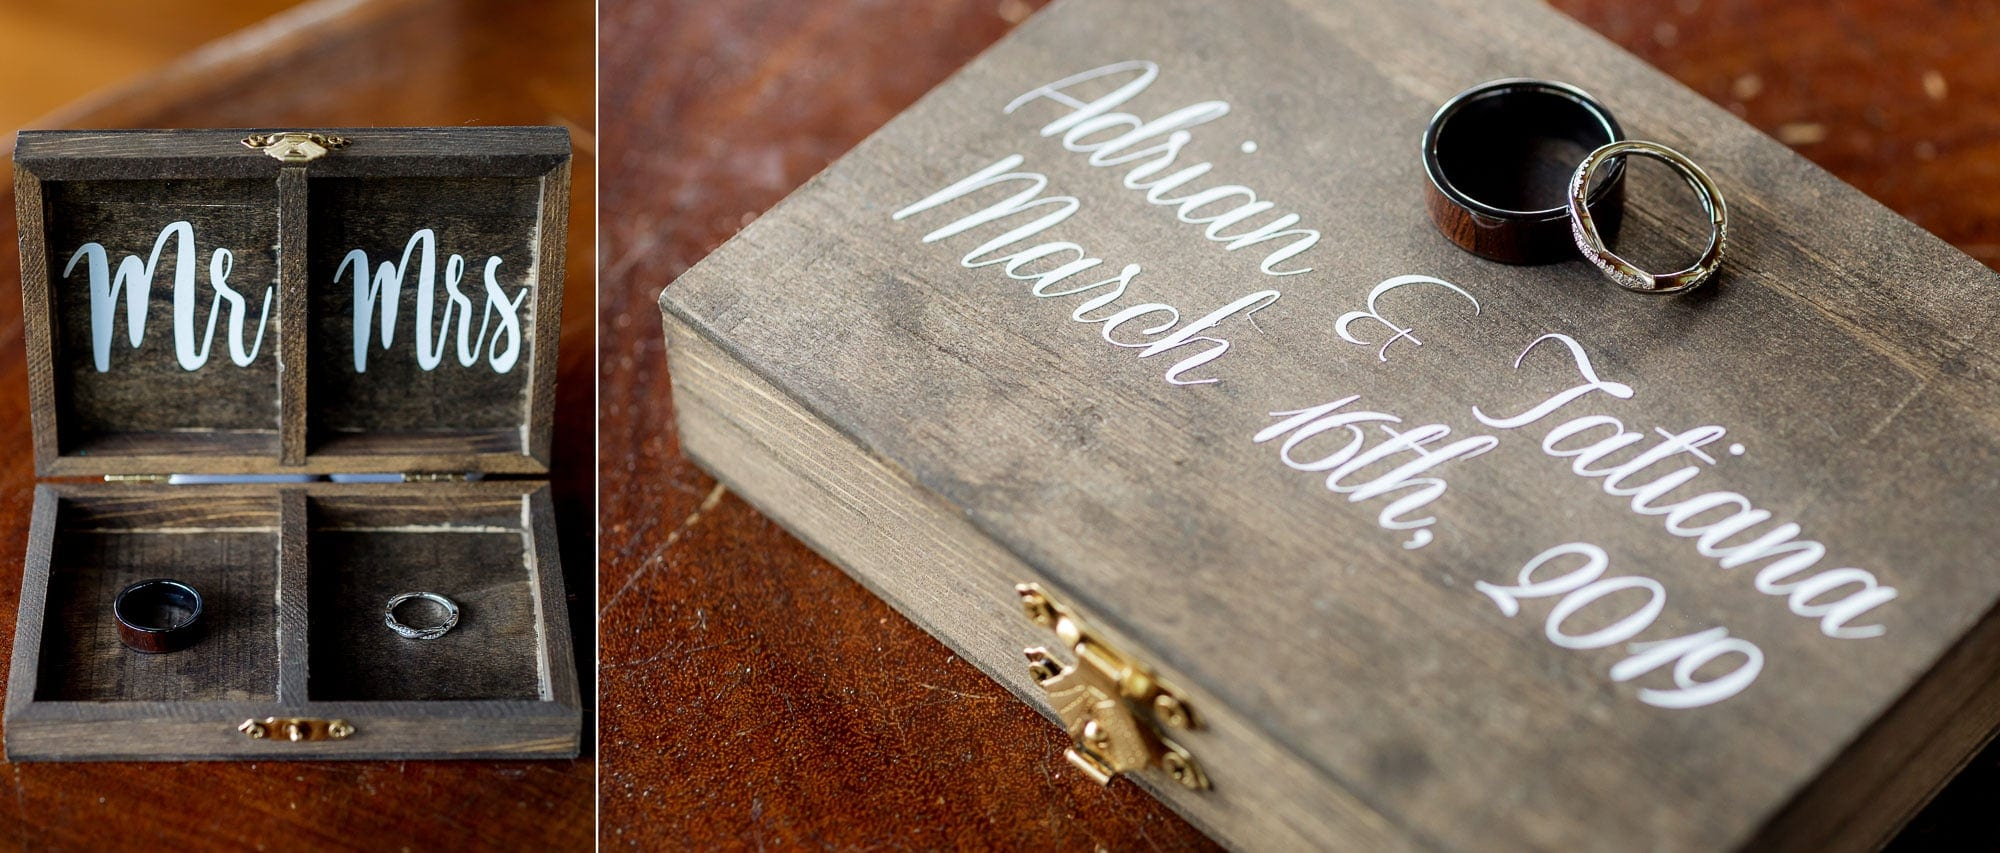 Special memento box with the bride and groom's unique wedding rings